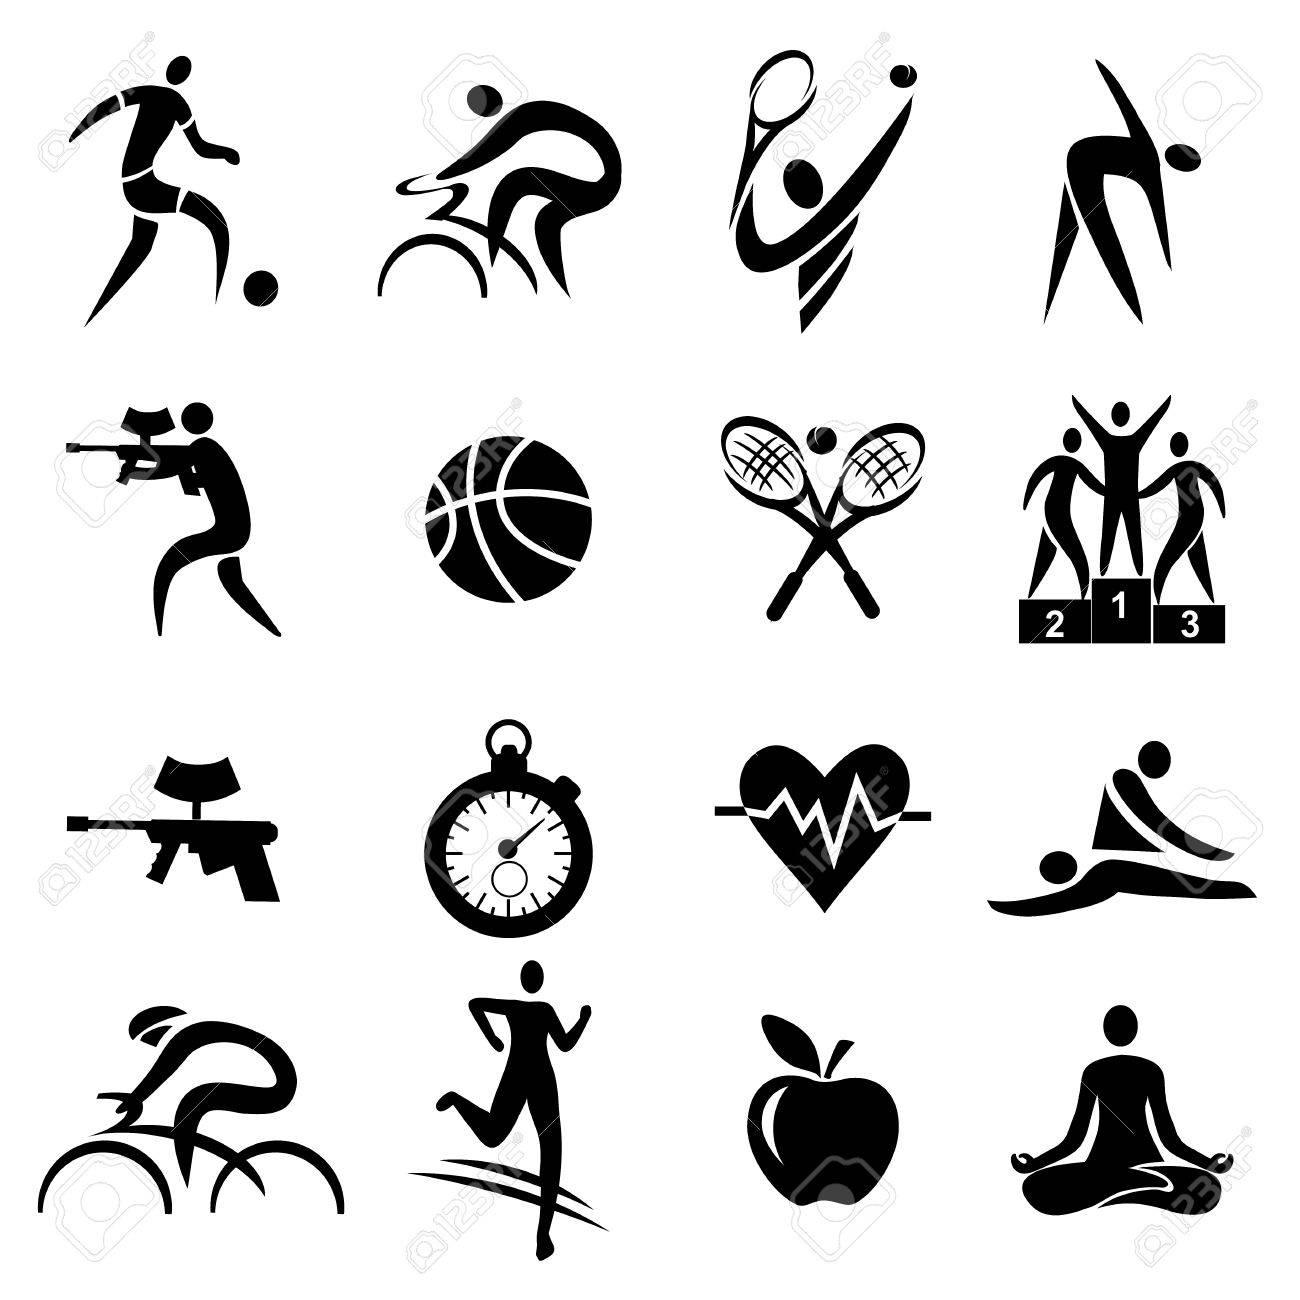 Image result for healthy lifestyle activities